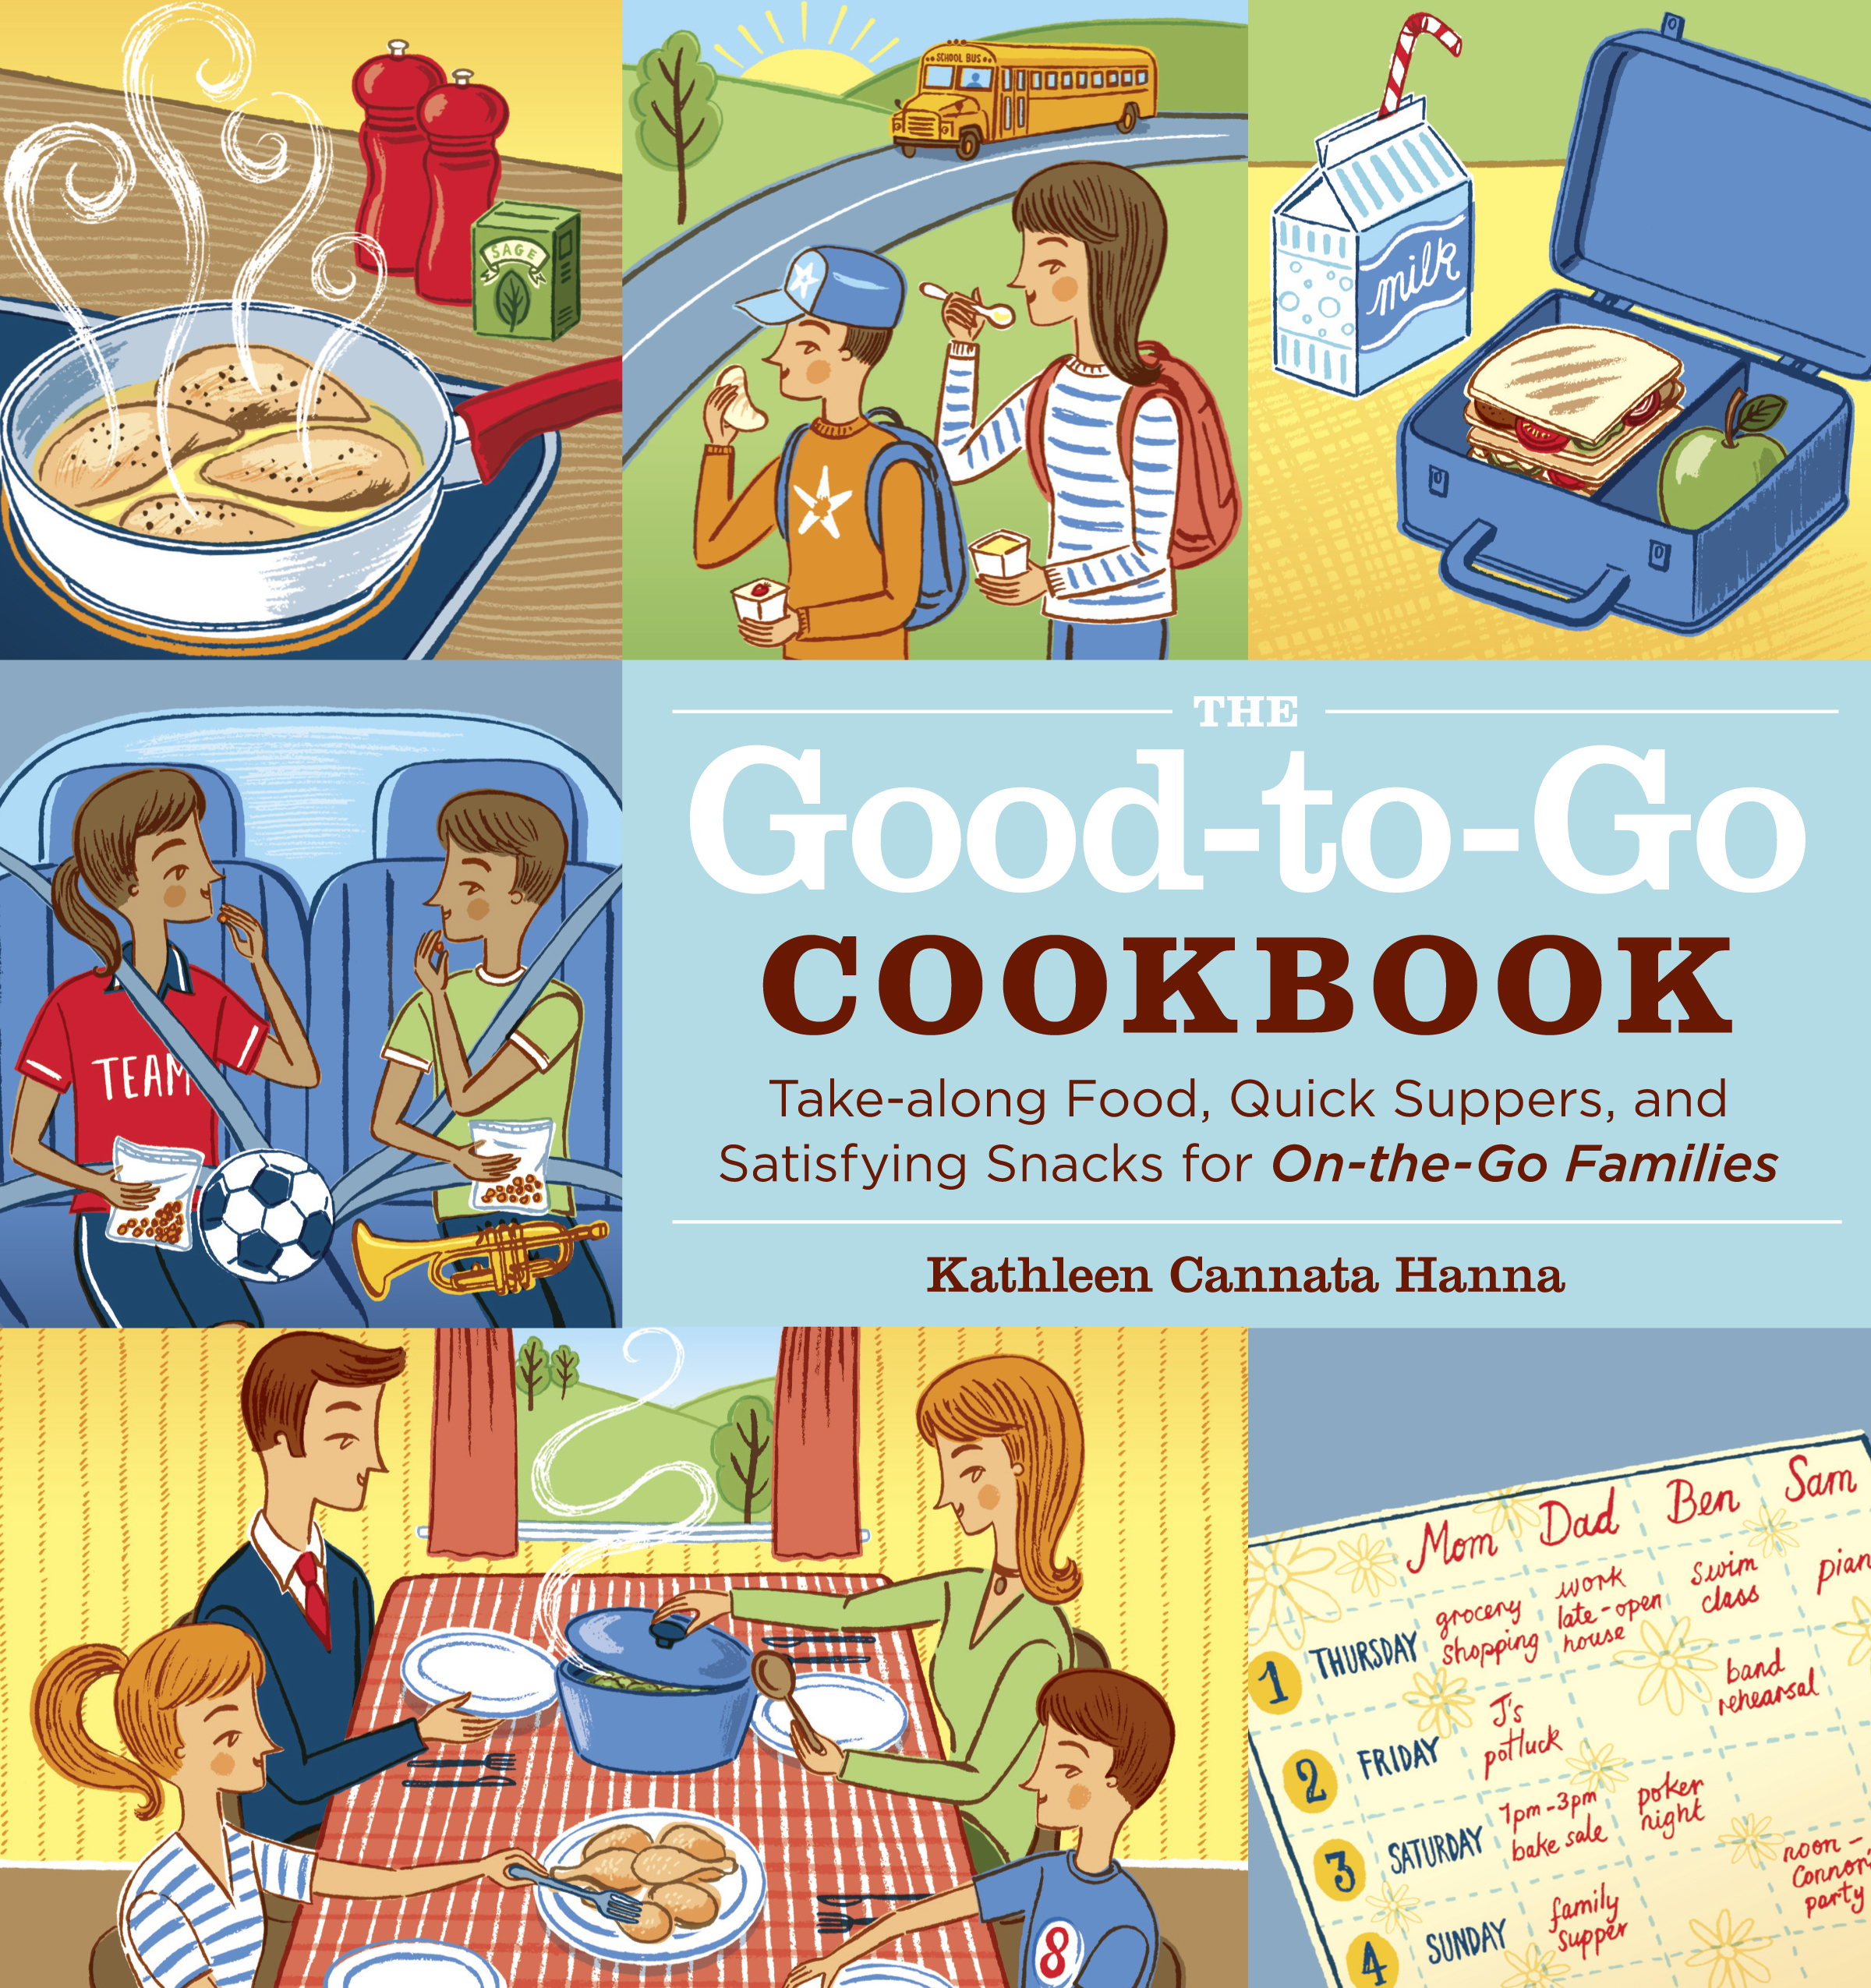 The Good-to-Go Cookbook Take-along Food, Quick Suppers, and Satisfying Snacks for On-The-Go Families - Kathleen Cannata Hanna